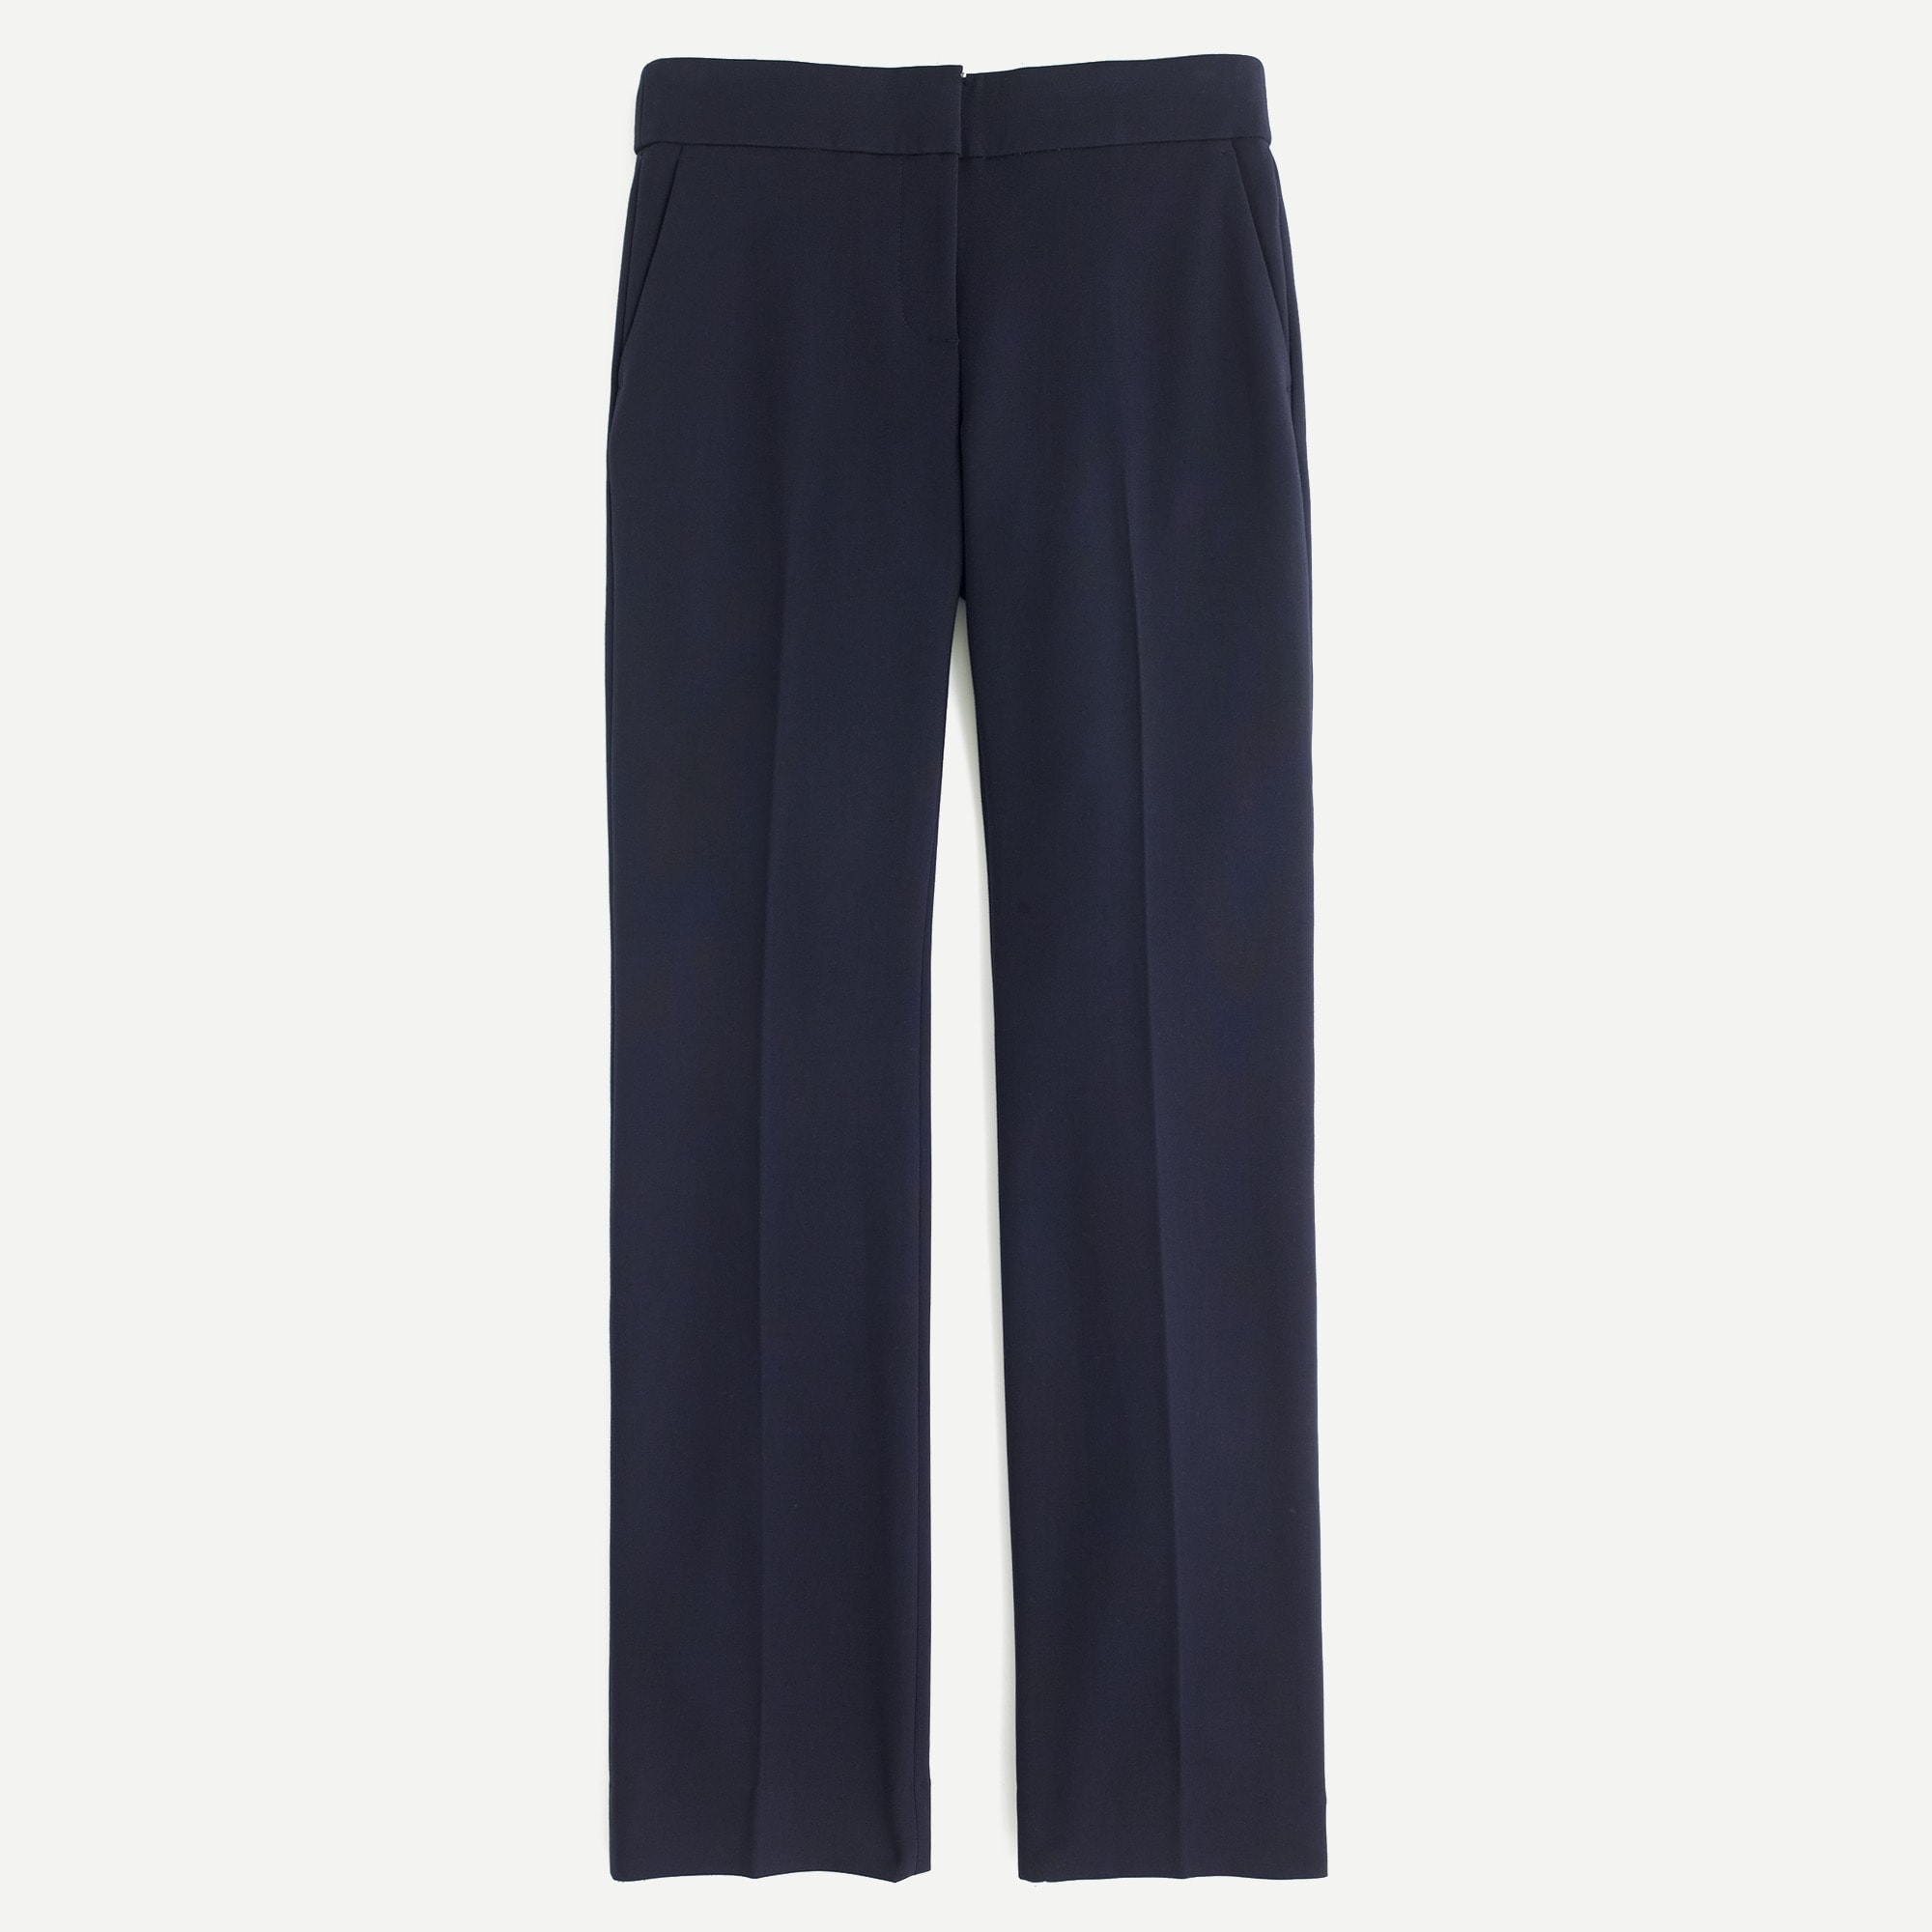 Image 1 for Petite Edie full-length trouser in four-season stretch